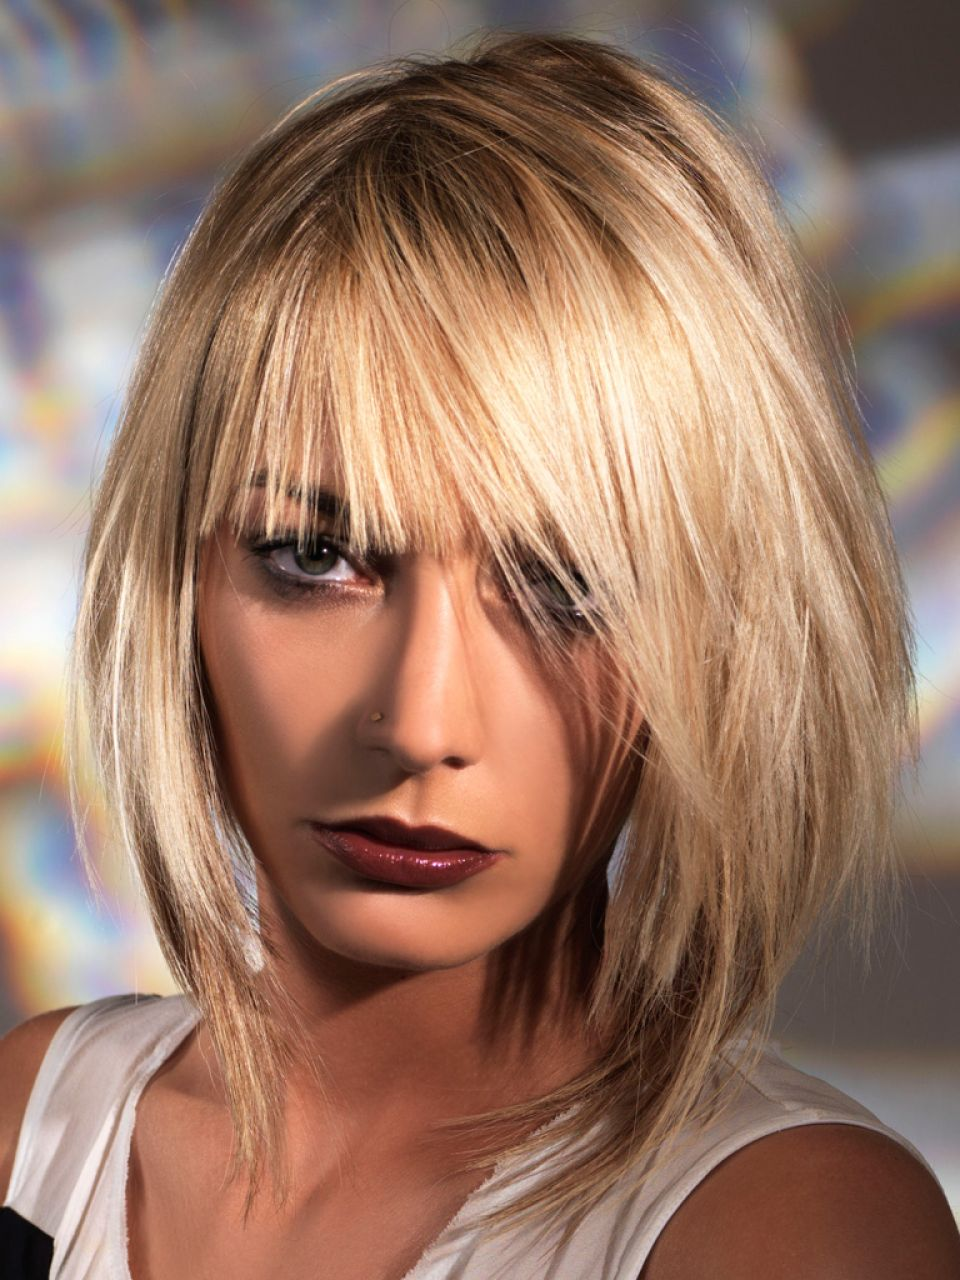 Blonde Damenfrisuren Unsere Top 20 Im Januar 2020